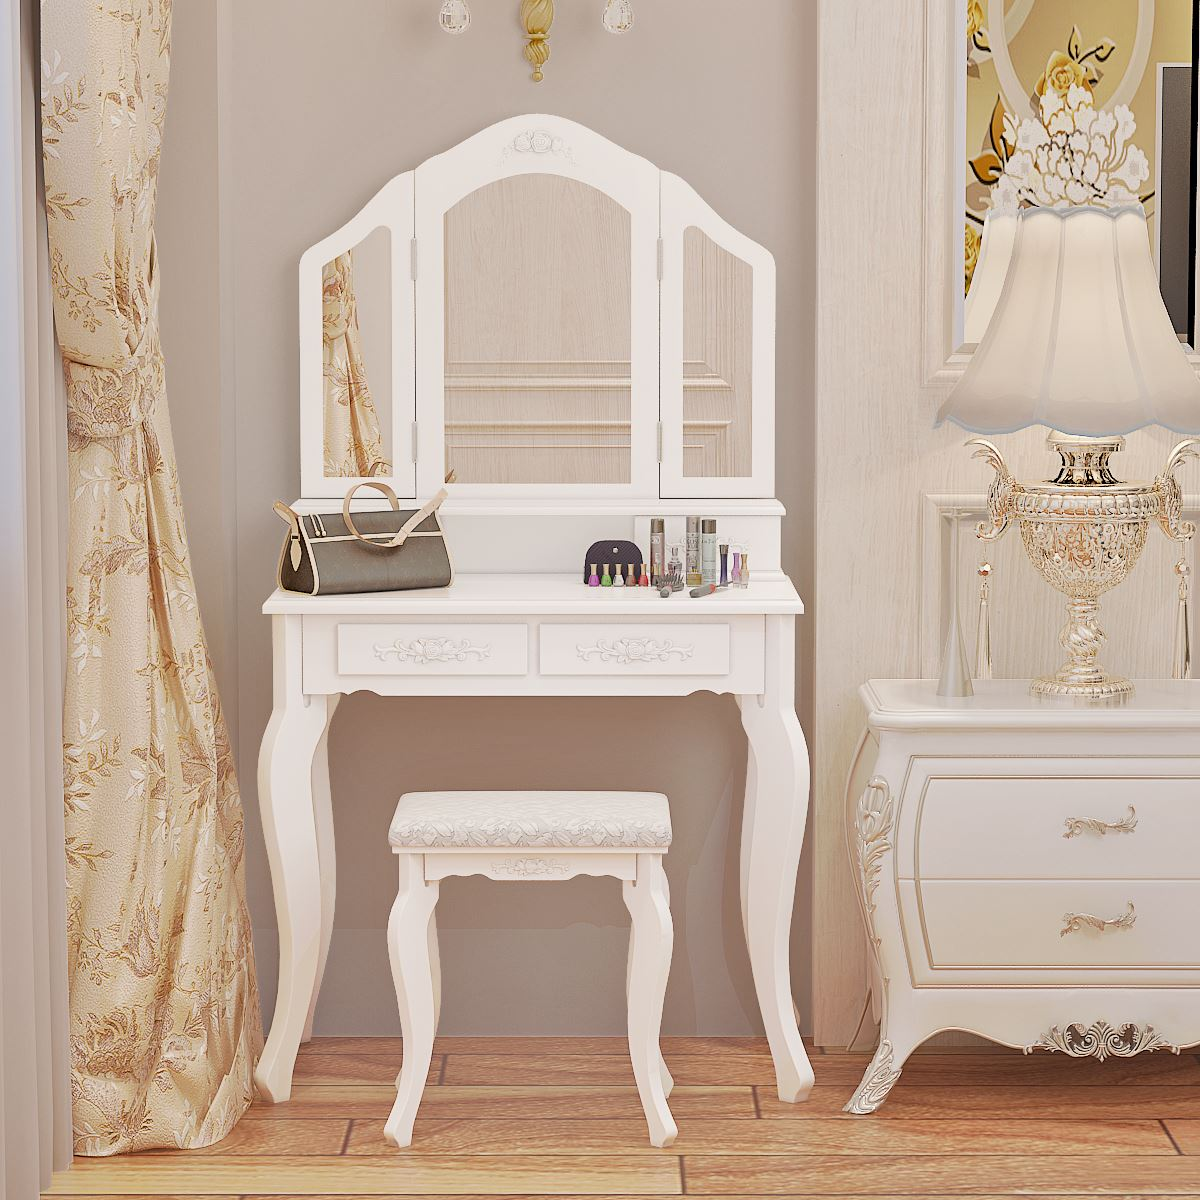 Panana Girls Princess Bedroom Premium Quality Dressing Table Stool Mirror White Home Furnitures Mother & Daughter Dressing Table